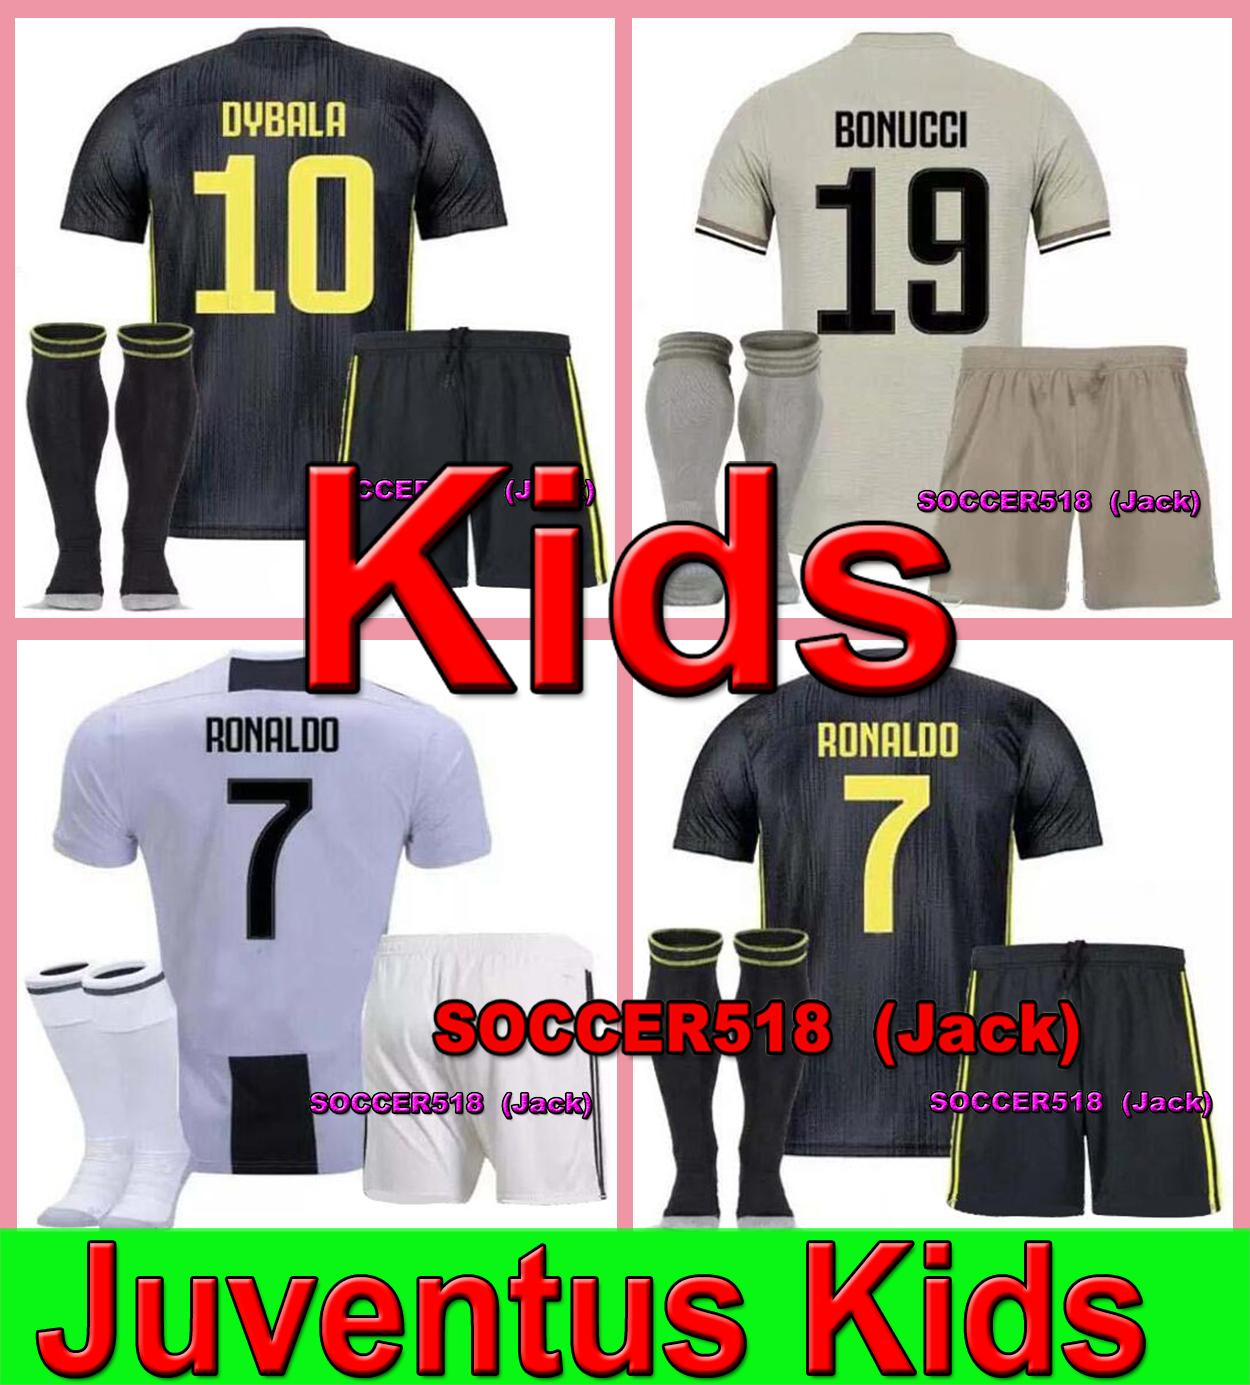 newest 27357 ef3c2 2019 kids kit juventus RONALDO #7 soccer jerseys DYBALA with shorts and  socks Maillots de football kids kit BERNARDESCHI camiseta de PJANIC